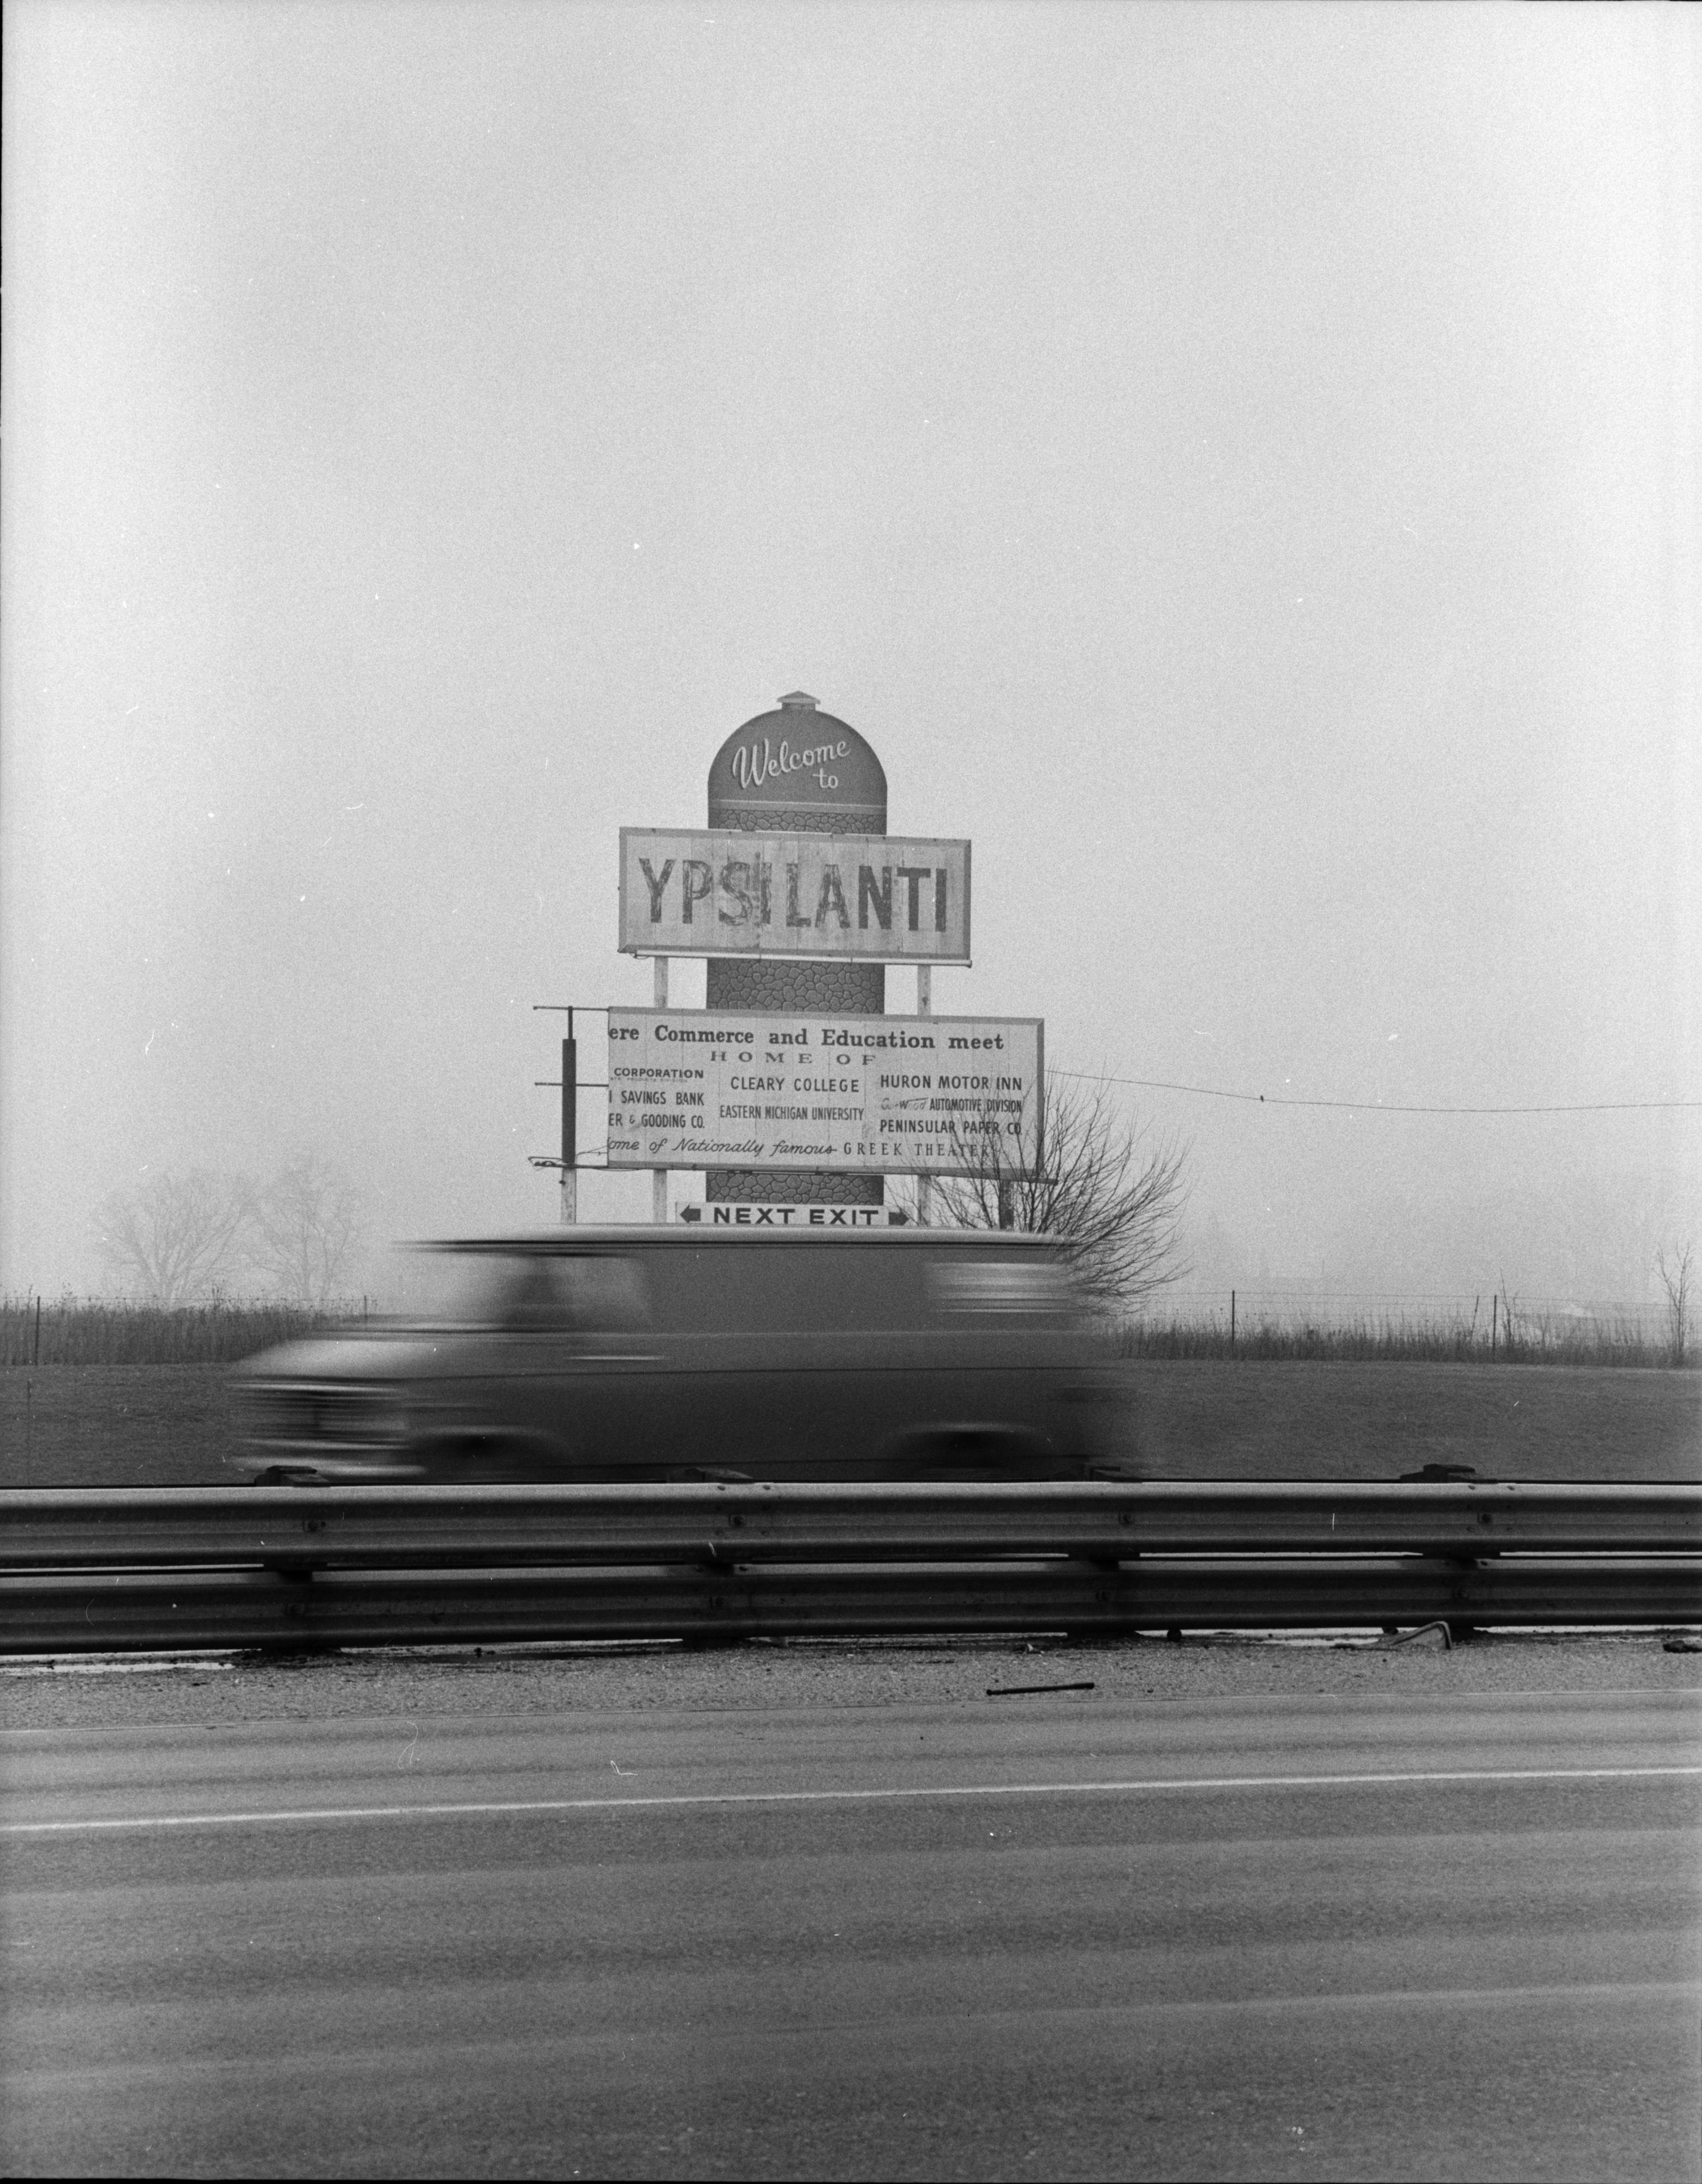 'Welcome to Ypsilanti' Sign to be Taken Down, March 1973 image